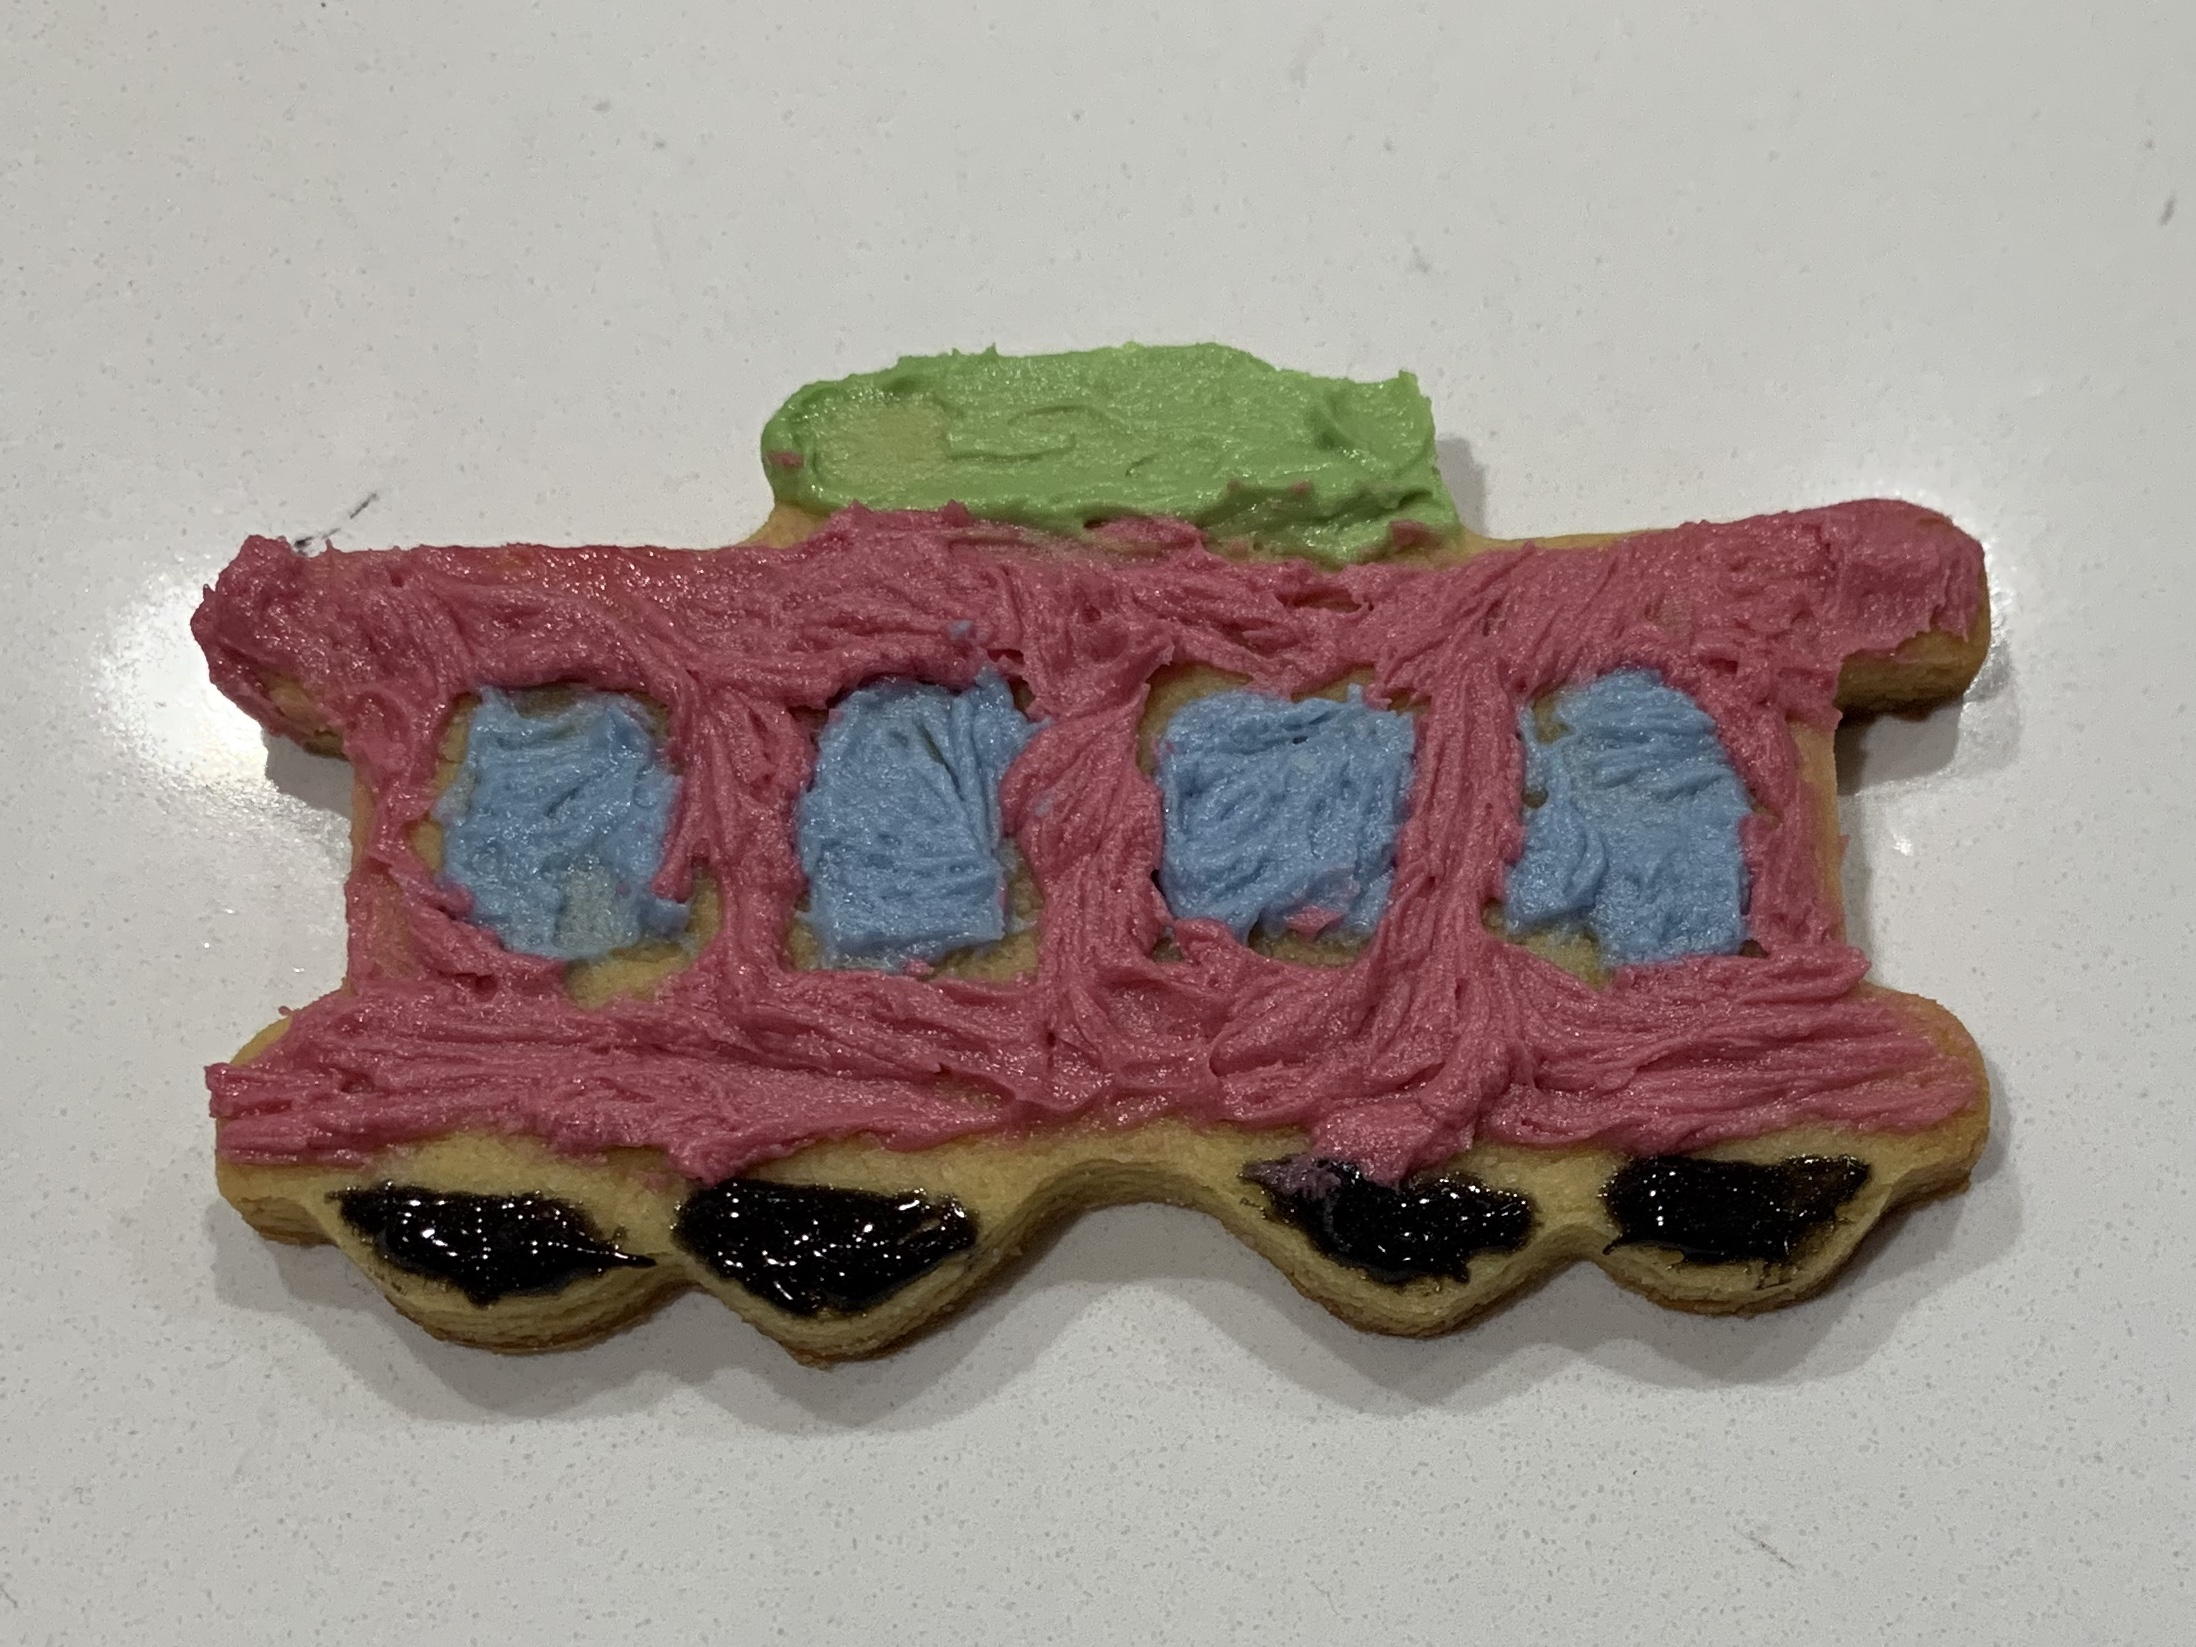 A trolley shaped sugar cookie, frosted in red with blue windows and black wheels